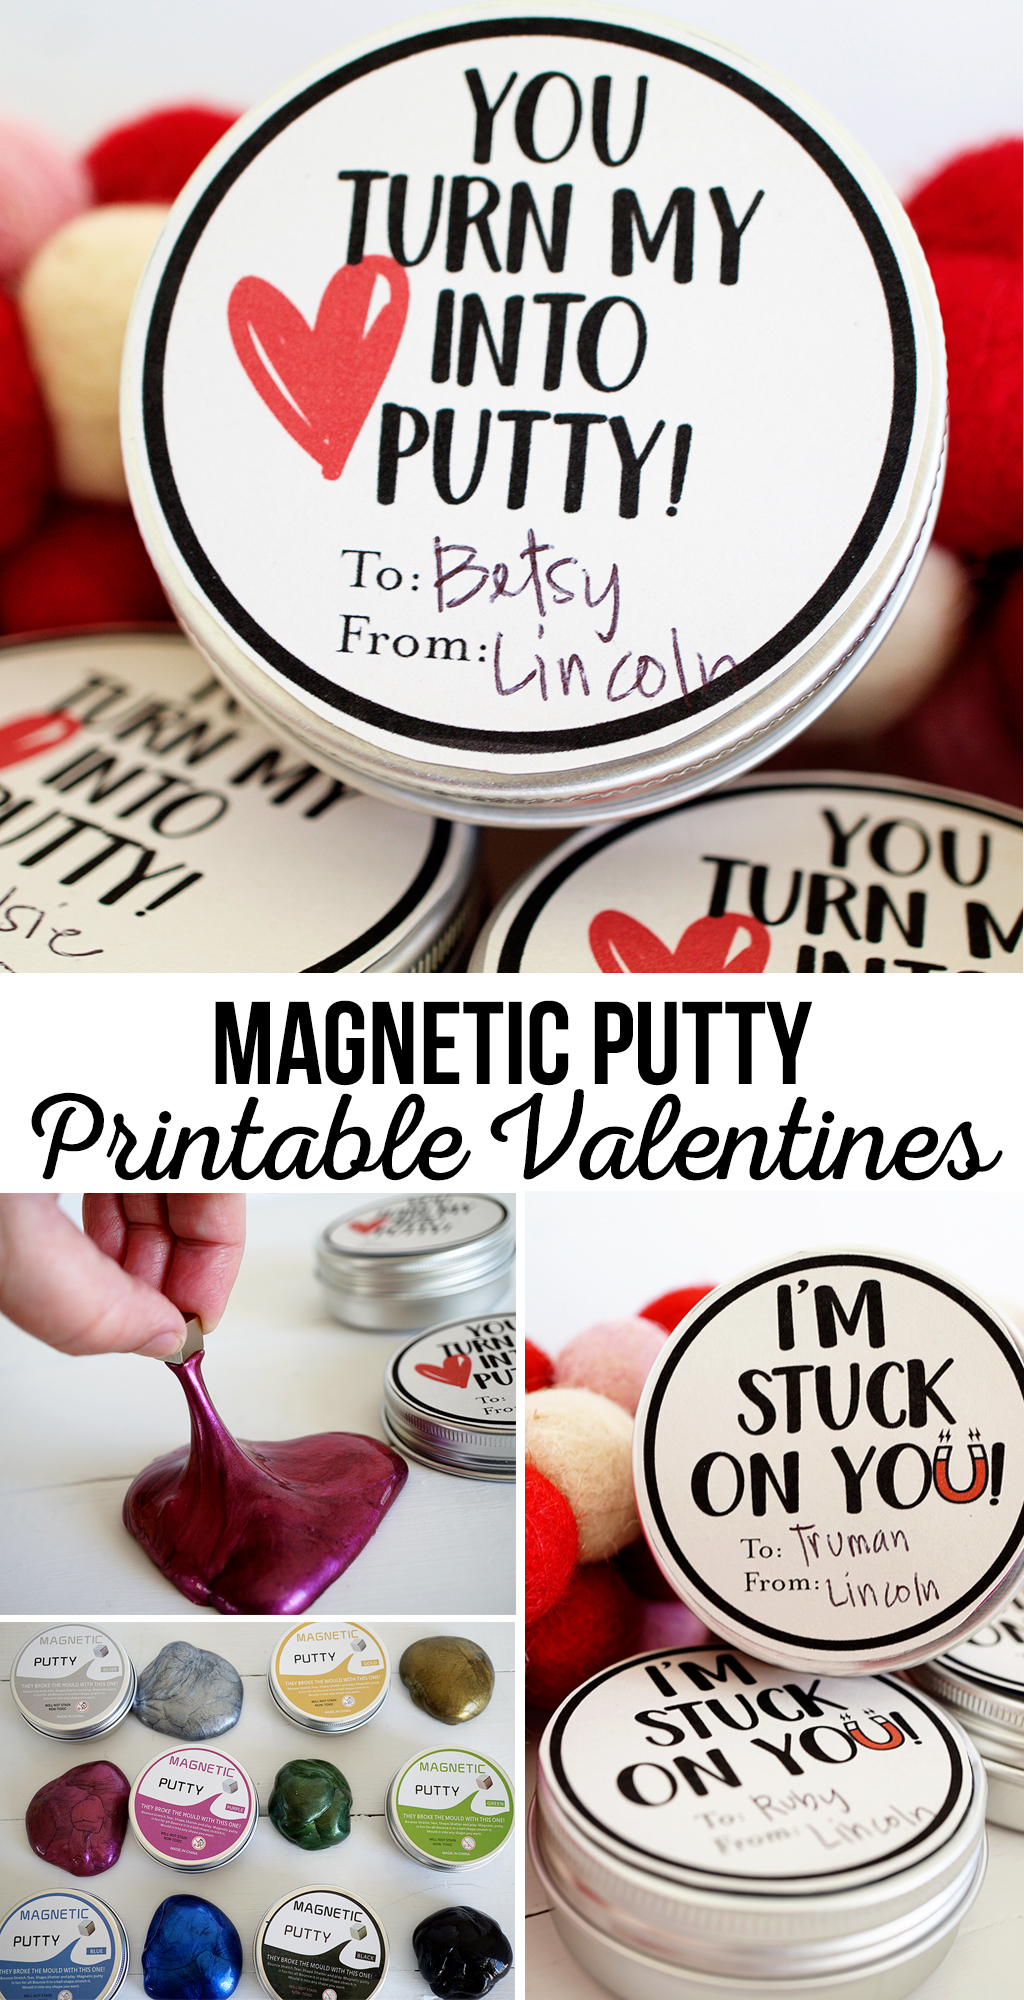 Magnetic Putty Printable Valentines